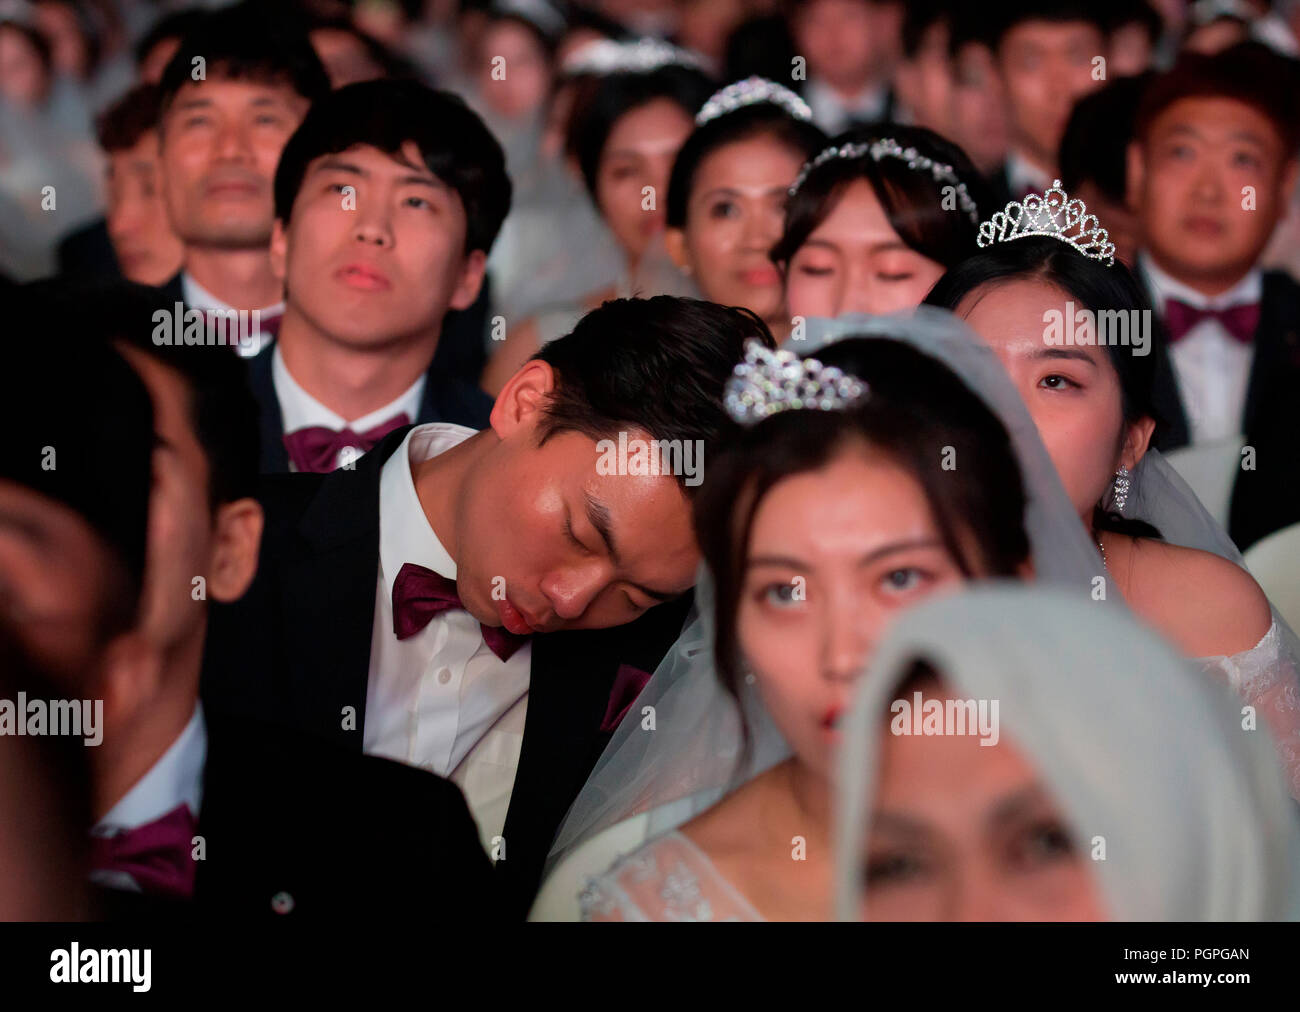 Seoul, South Korea. 27th Aug 2018. Mass wedding ceremony of the Unification Church, Aug 27, 2018 : A bride groom dozes during a mass wedding ceremony of the Unification Church at the CheongShim Peace World Center in Gapyeong, about 60 km (37 miles) northeast of Seoul, South Korea. Four thousand newlywed couples from around the world participated in the mass wedding on Monday, which was organized by Hak Ja Han Moon, wife of the late Reverend Sun Myung Moon. Credit: Aflo Co. Ltd./Alamy Live News - Stock Image